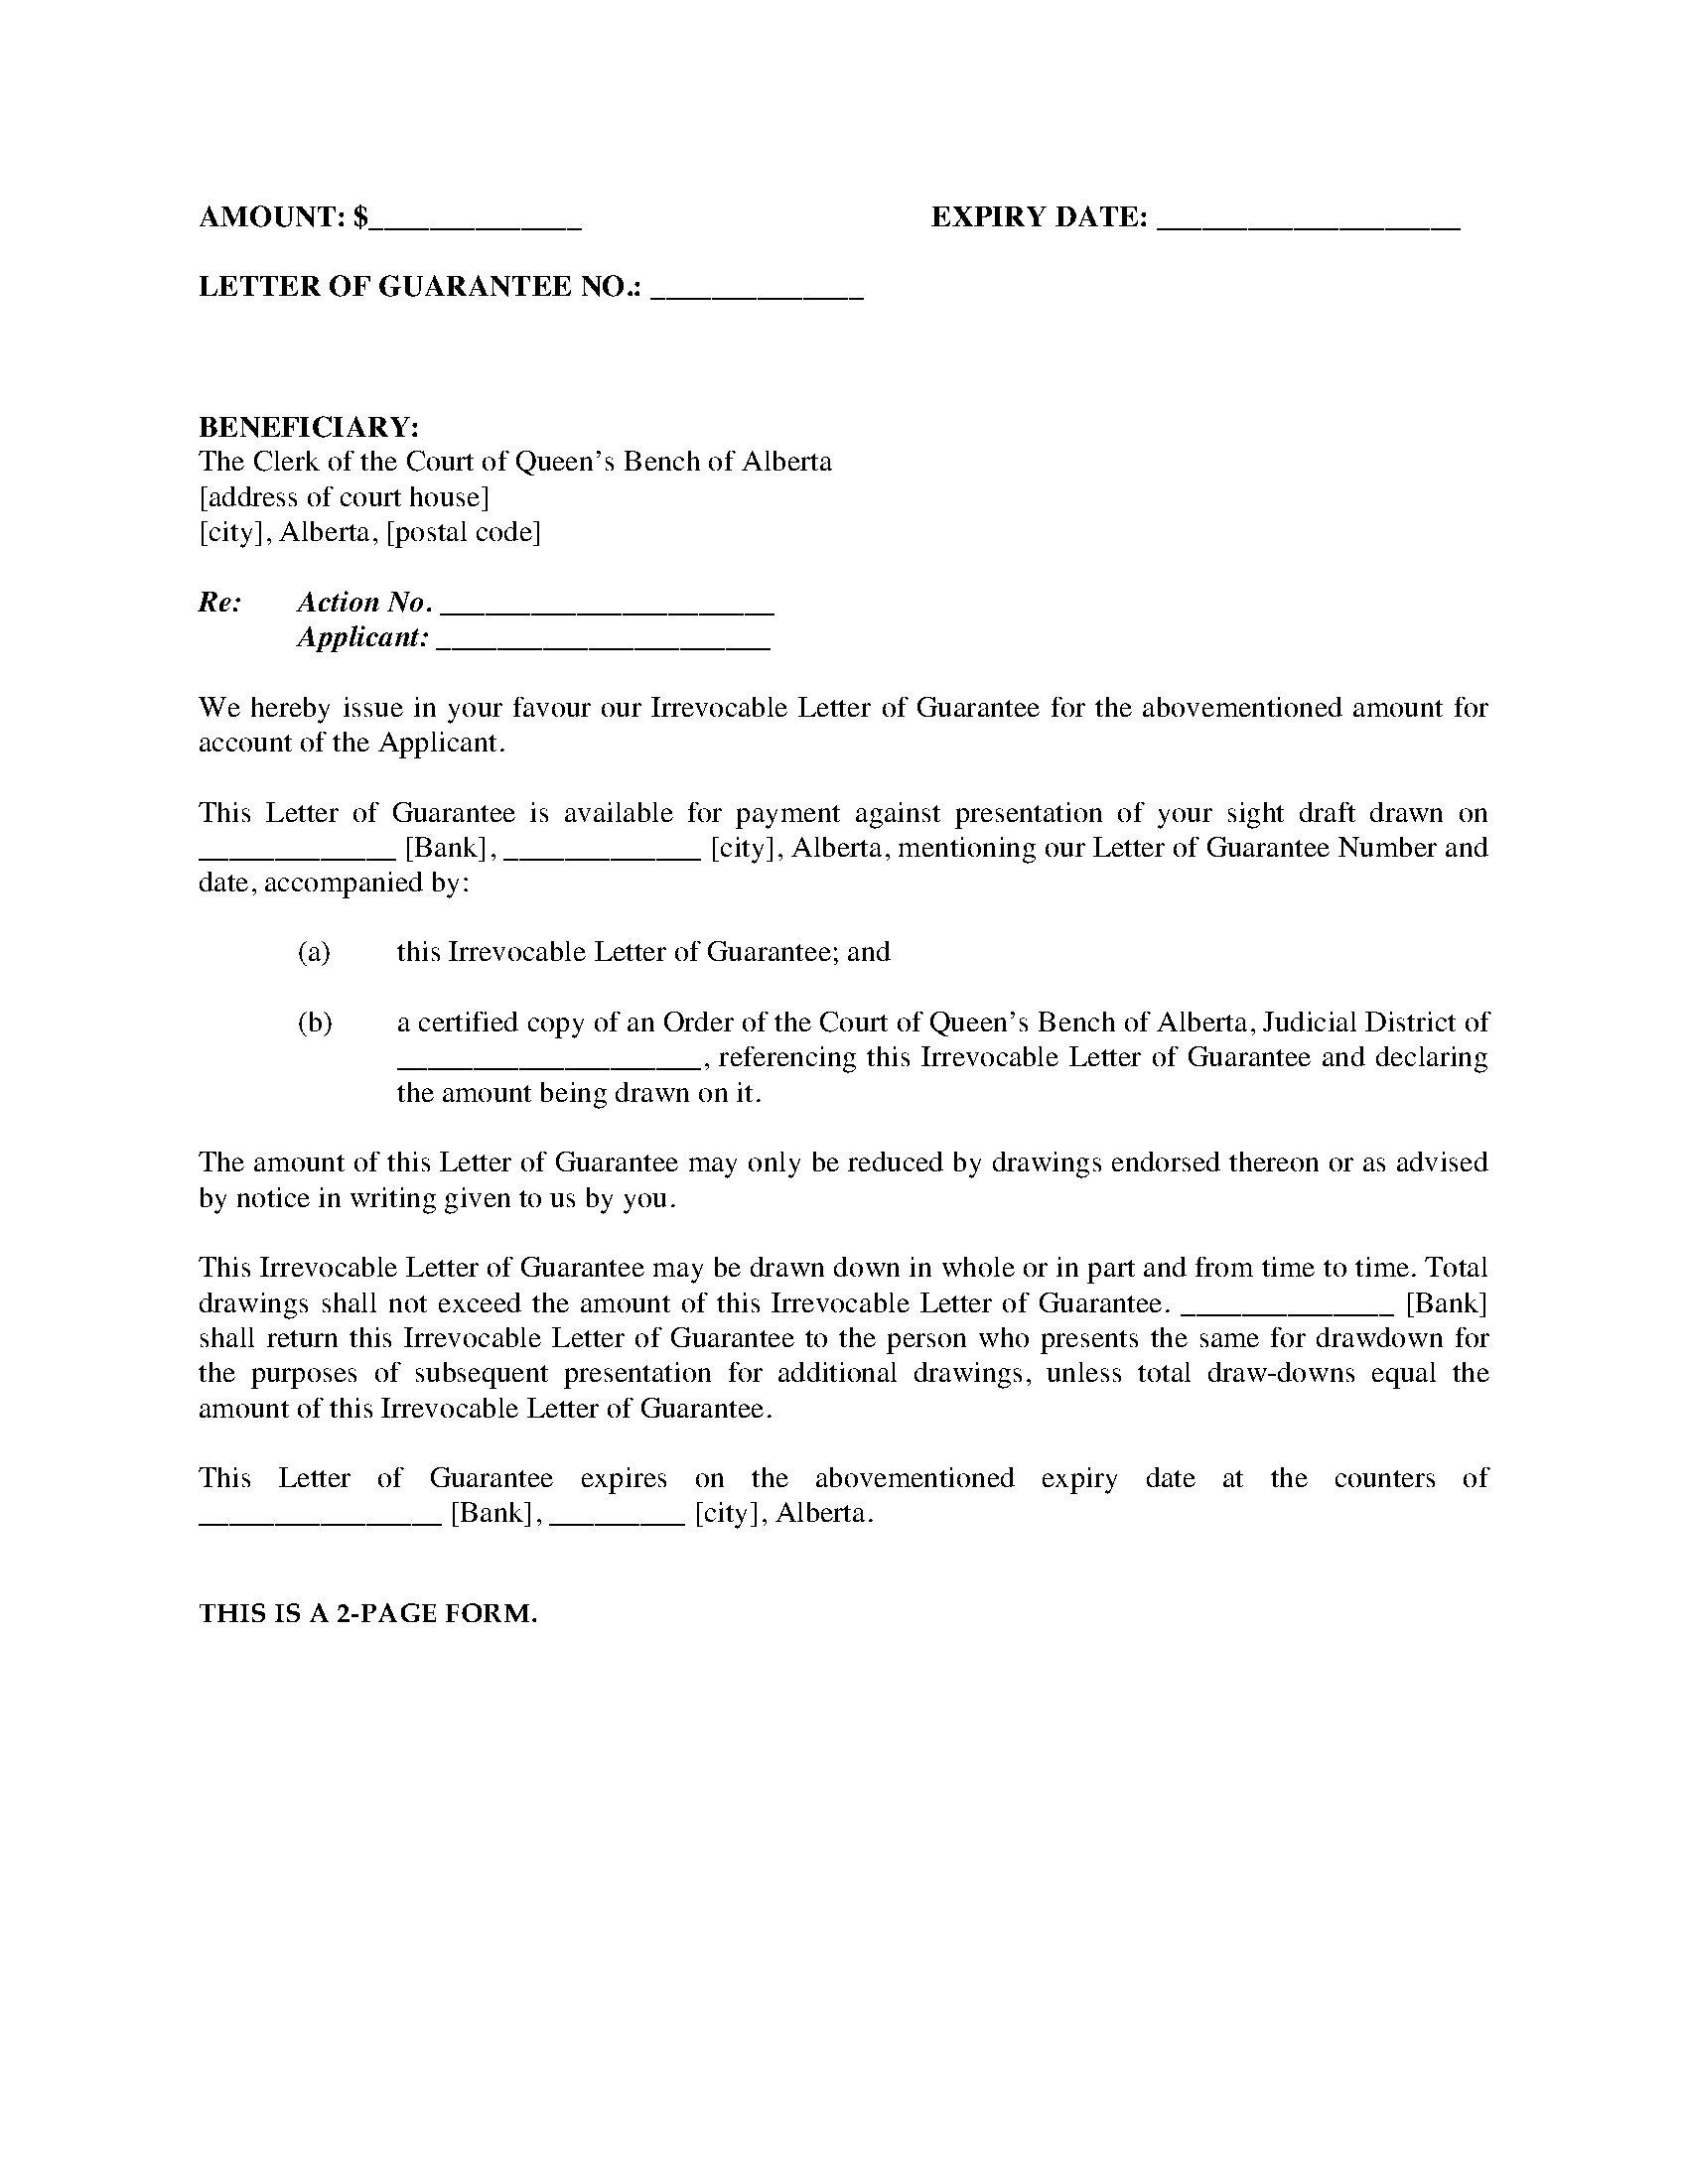 Alberta Irrevocable Letter Of Guarantee Legal Forms And Business